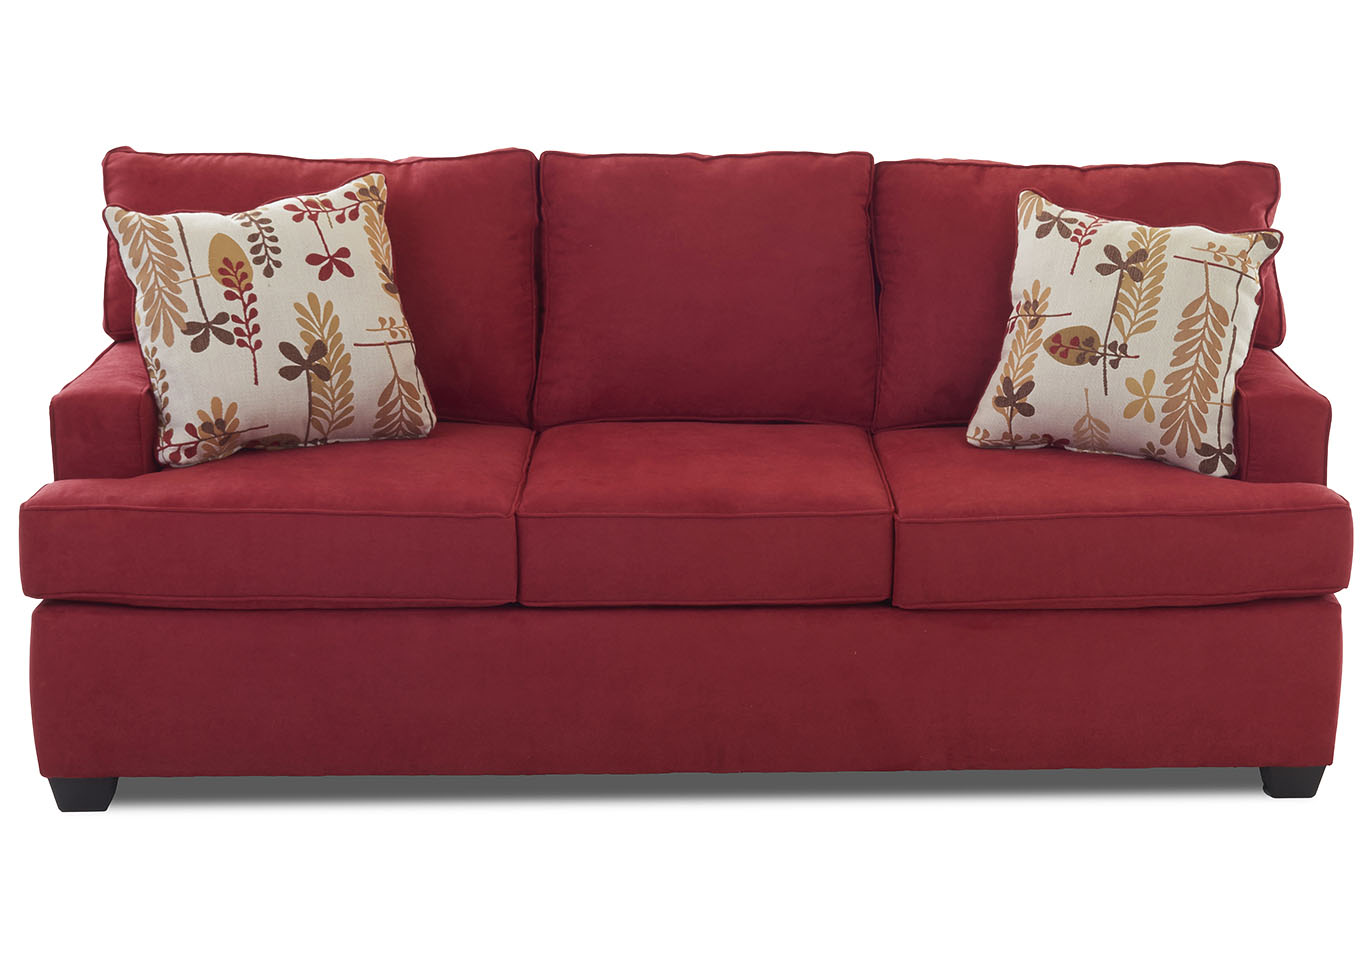 Cruze Red Stationary Fabric Sofa,Klaussner Home Furnishings